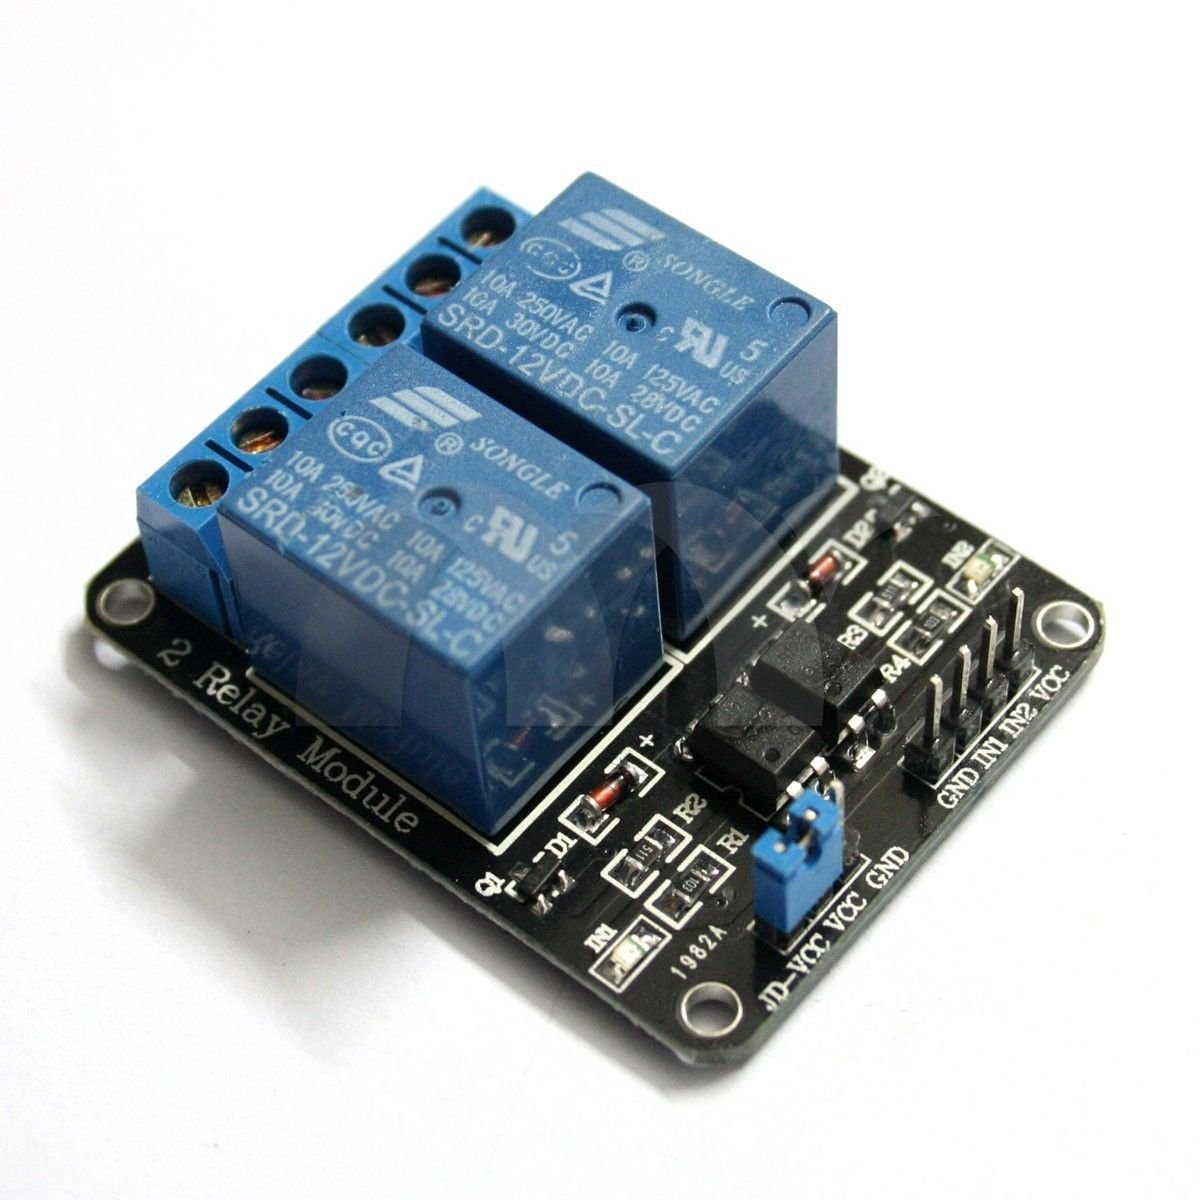 Cheap 12v Relay Arduino, find 12v Relay Arduino deals on line at